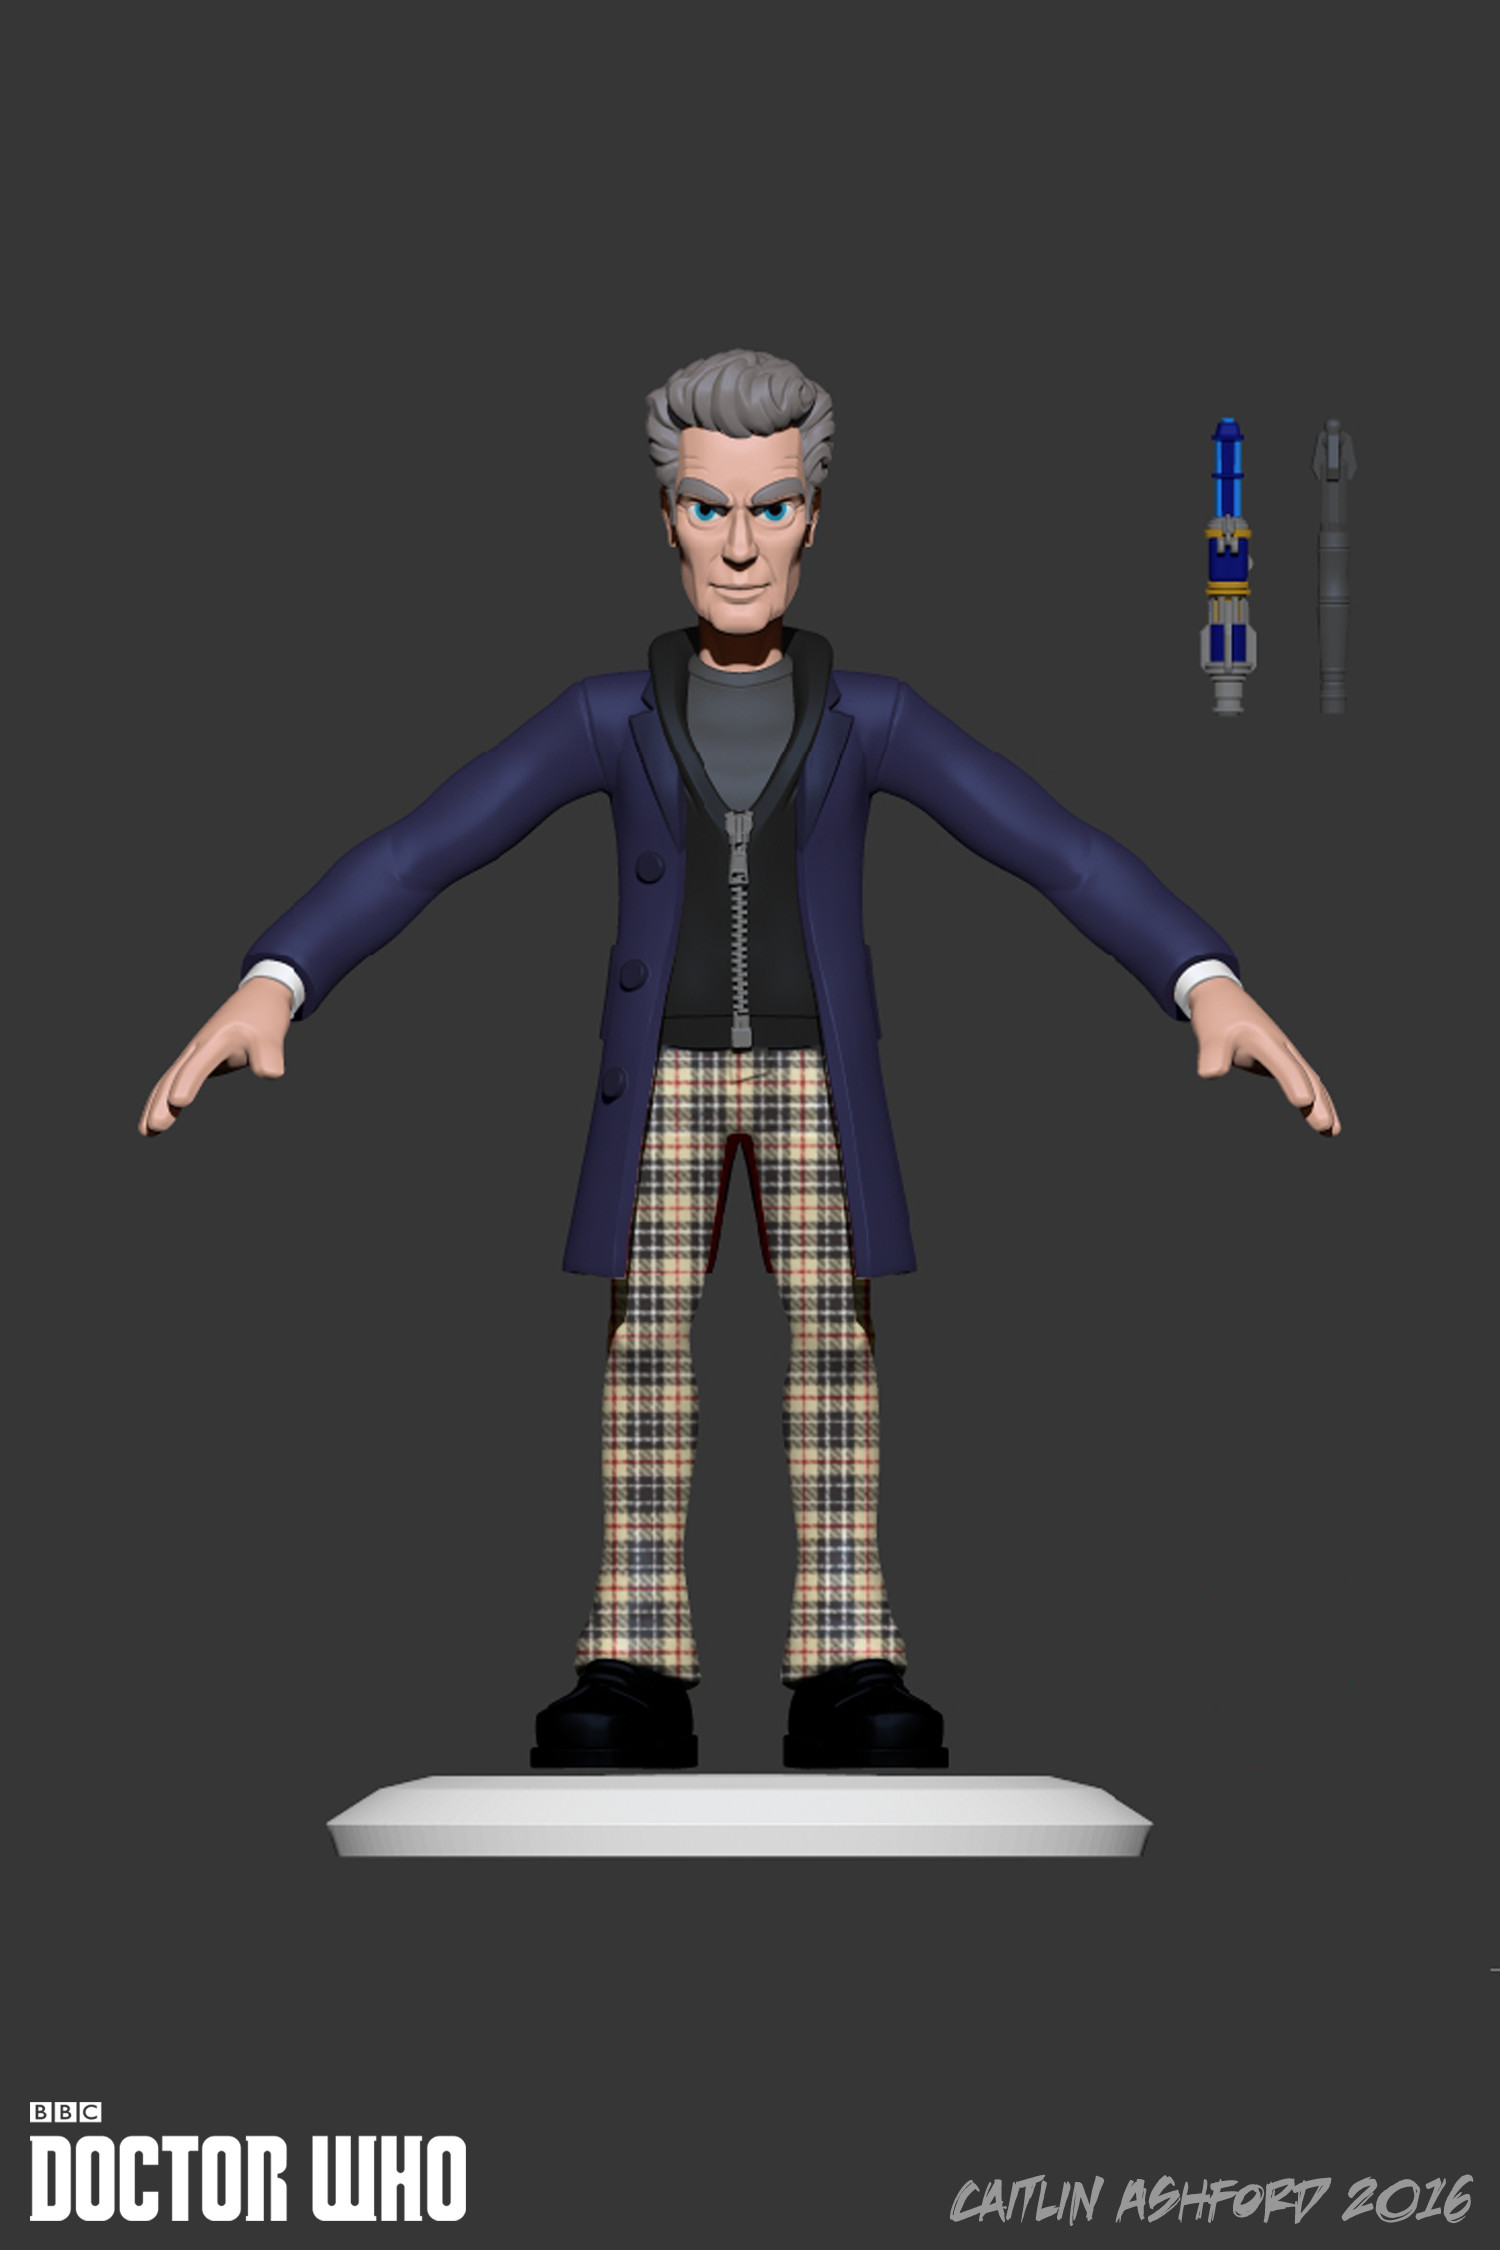 Caitlin ashford dw the doctor capaldi final tpose2